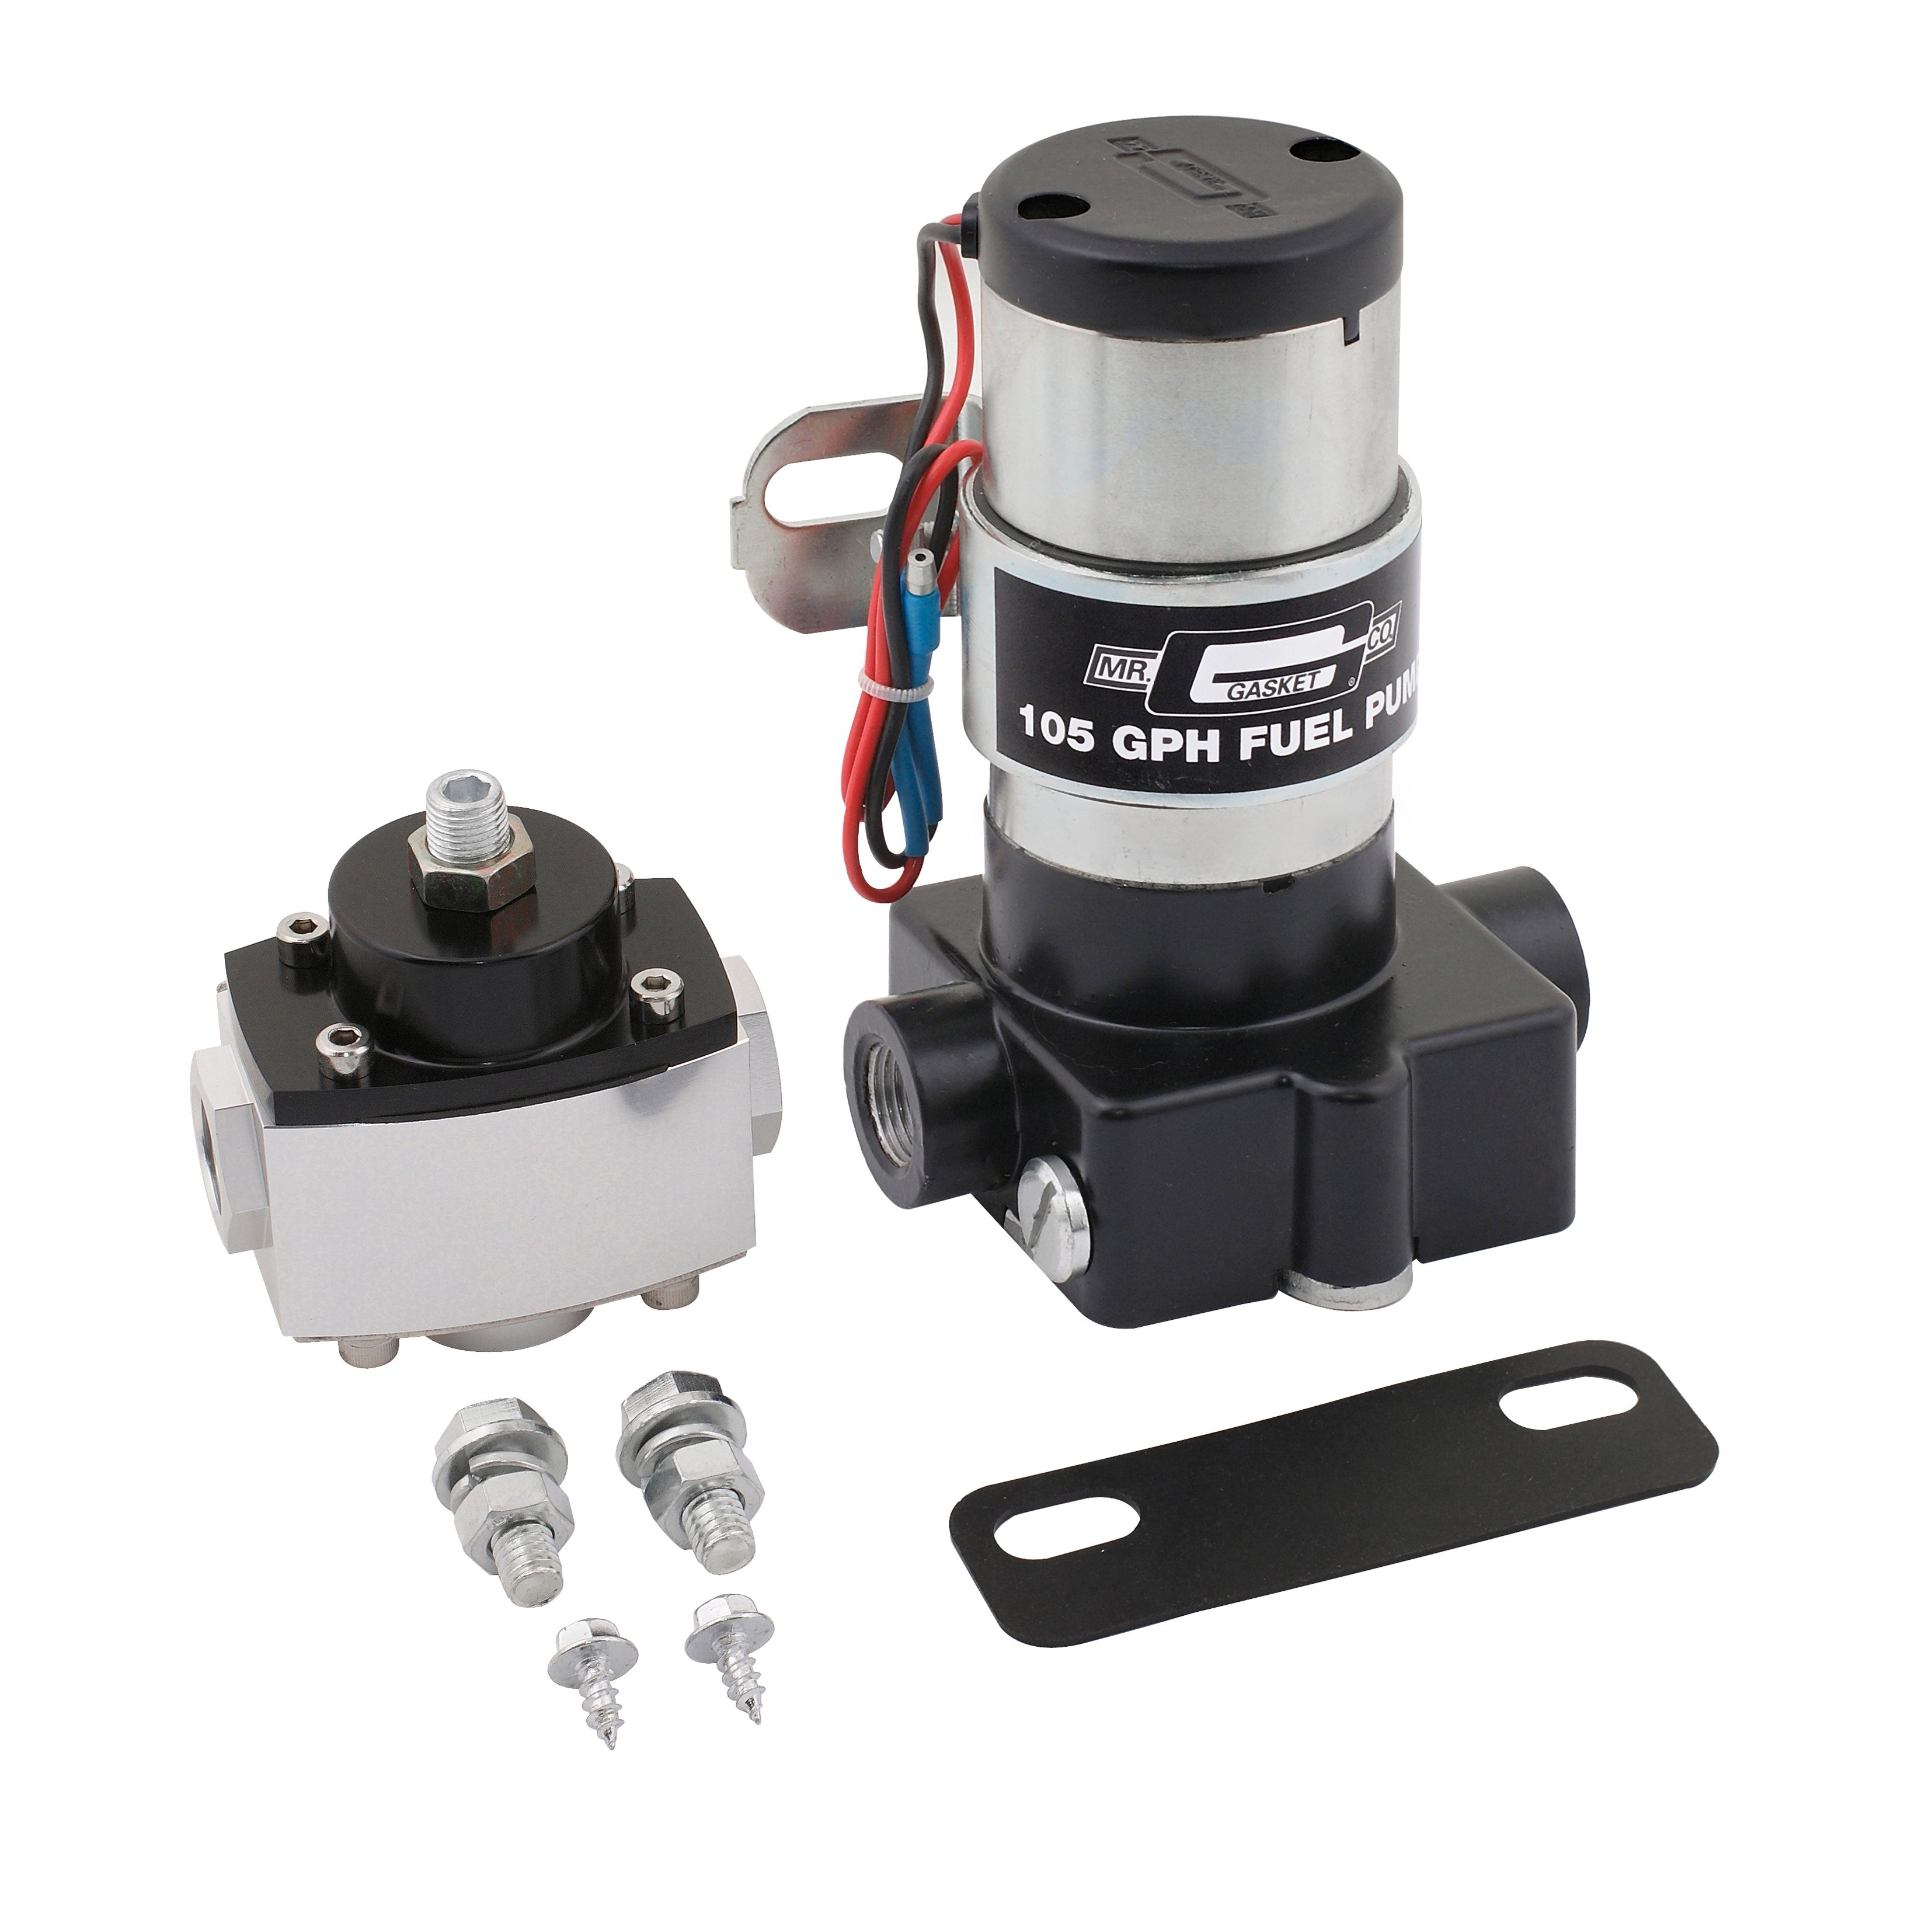 Mr  Gasket Electric Fuel Pump with Regulator - 105 GPH